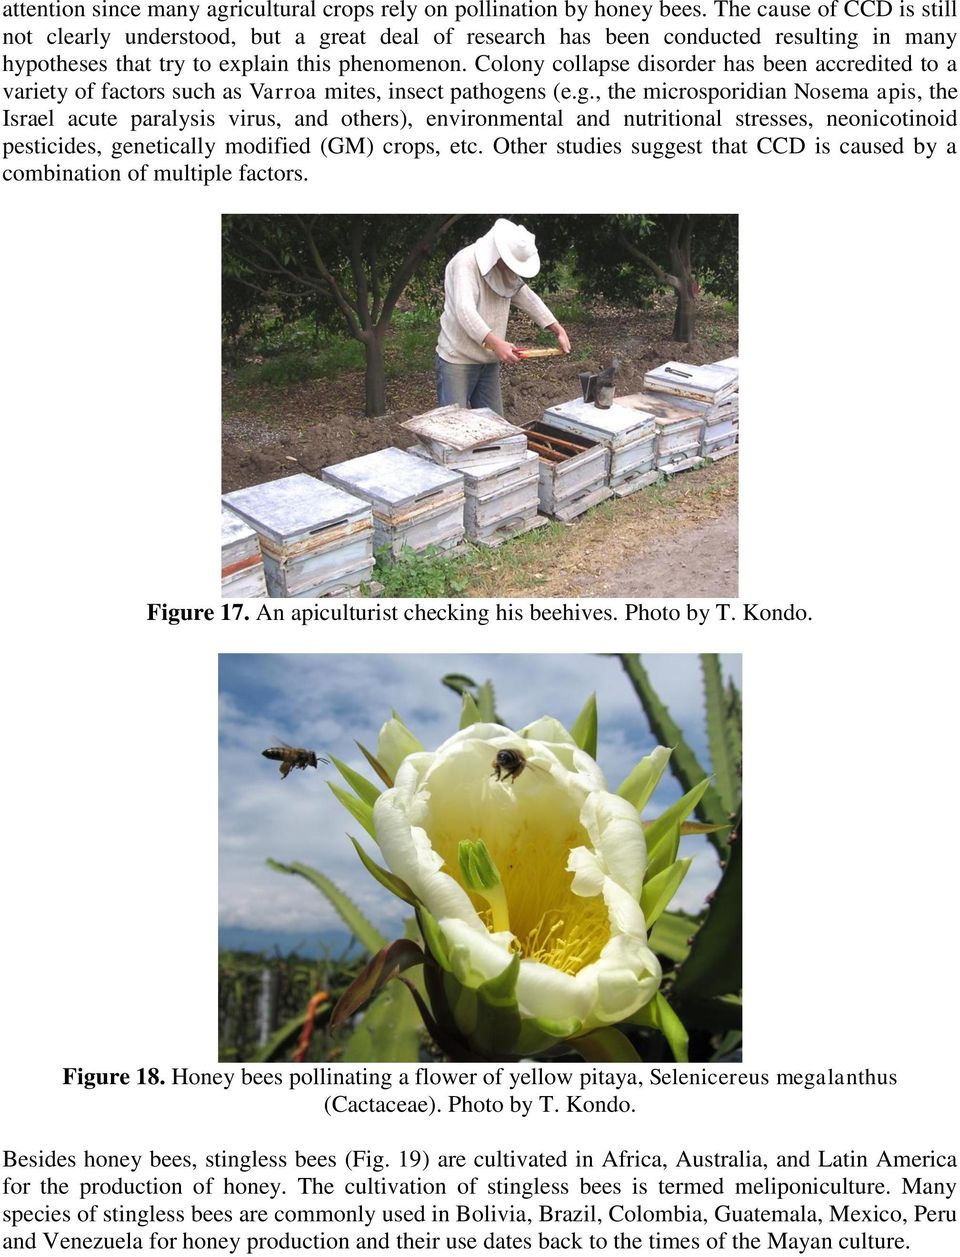 Colony collapse disorder has been accredited to a variety of factors such as Varroa mites, insect pathoge